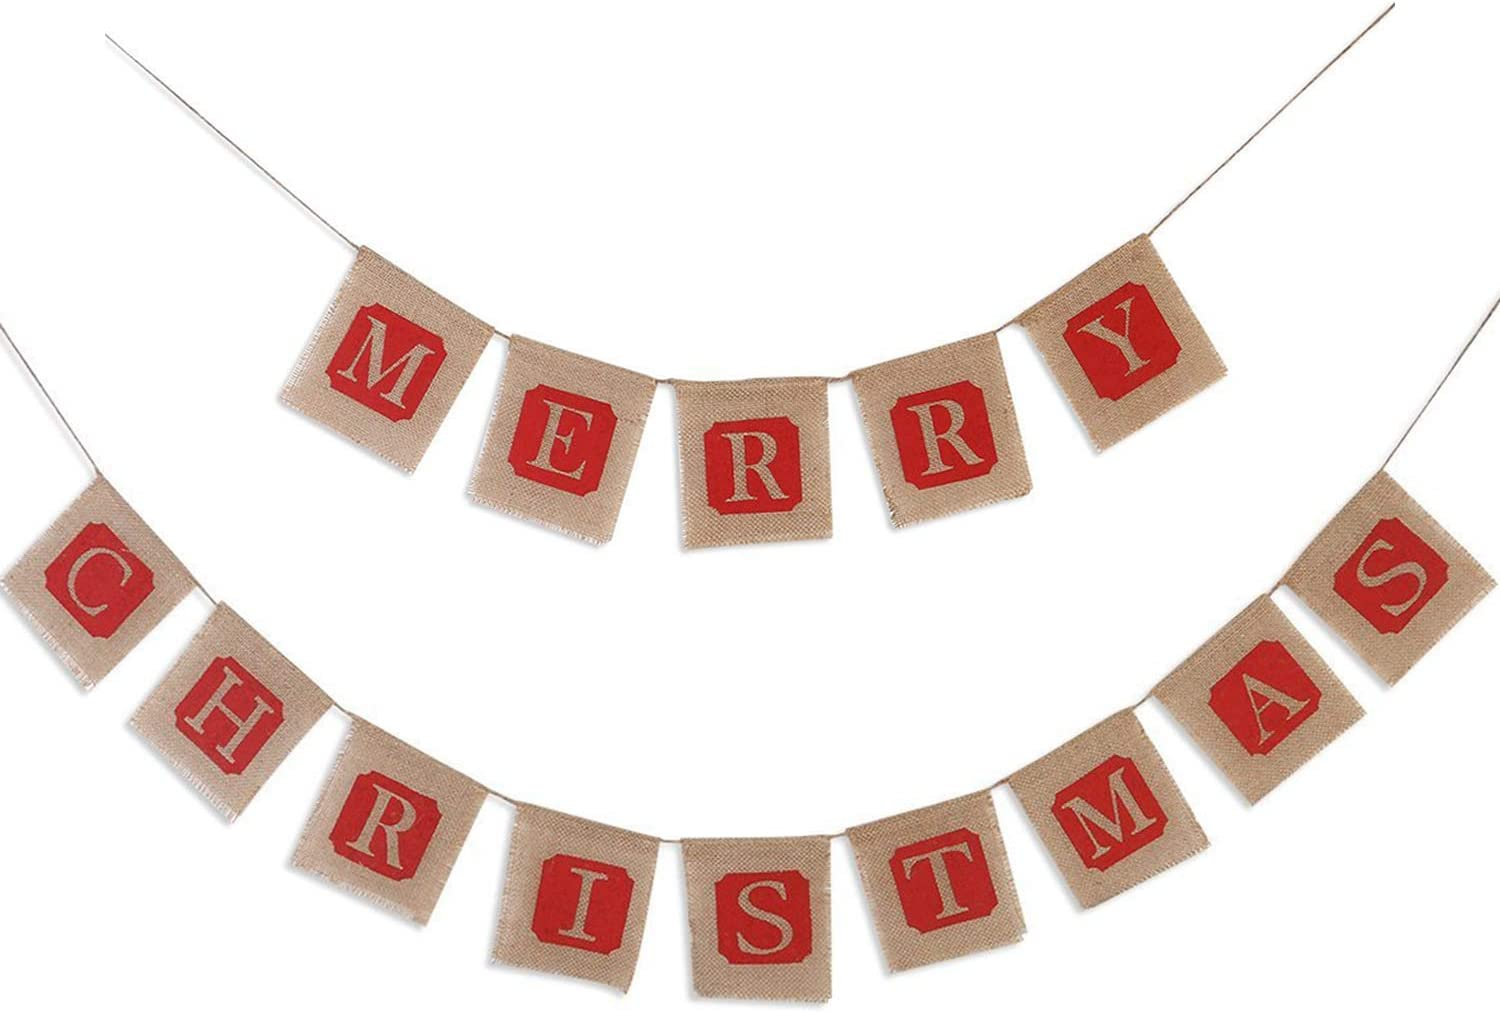 Christmas Banner Burlap, Merry Sign Christmas Bunting, Jute Banners Garlands, Holiday Natural Bunting, Great for Xmas Party Decoration Photo Prop Décor, Christmas Banner, Party Supplies